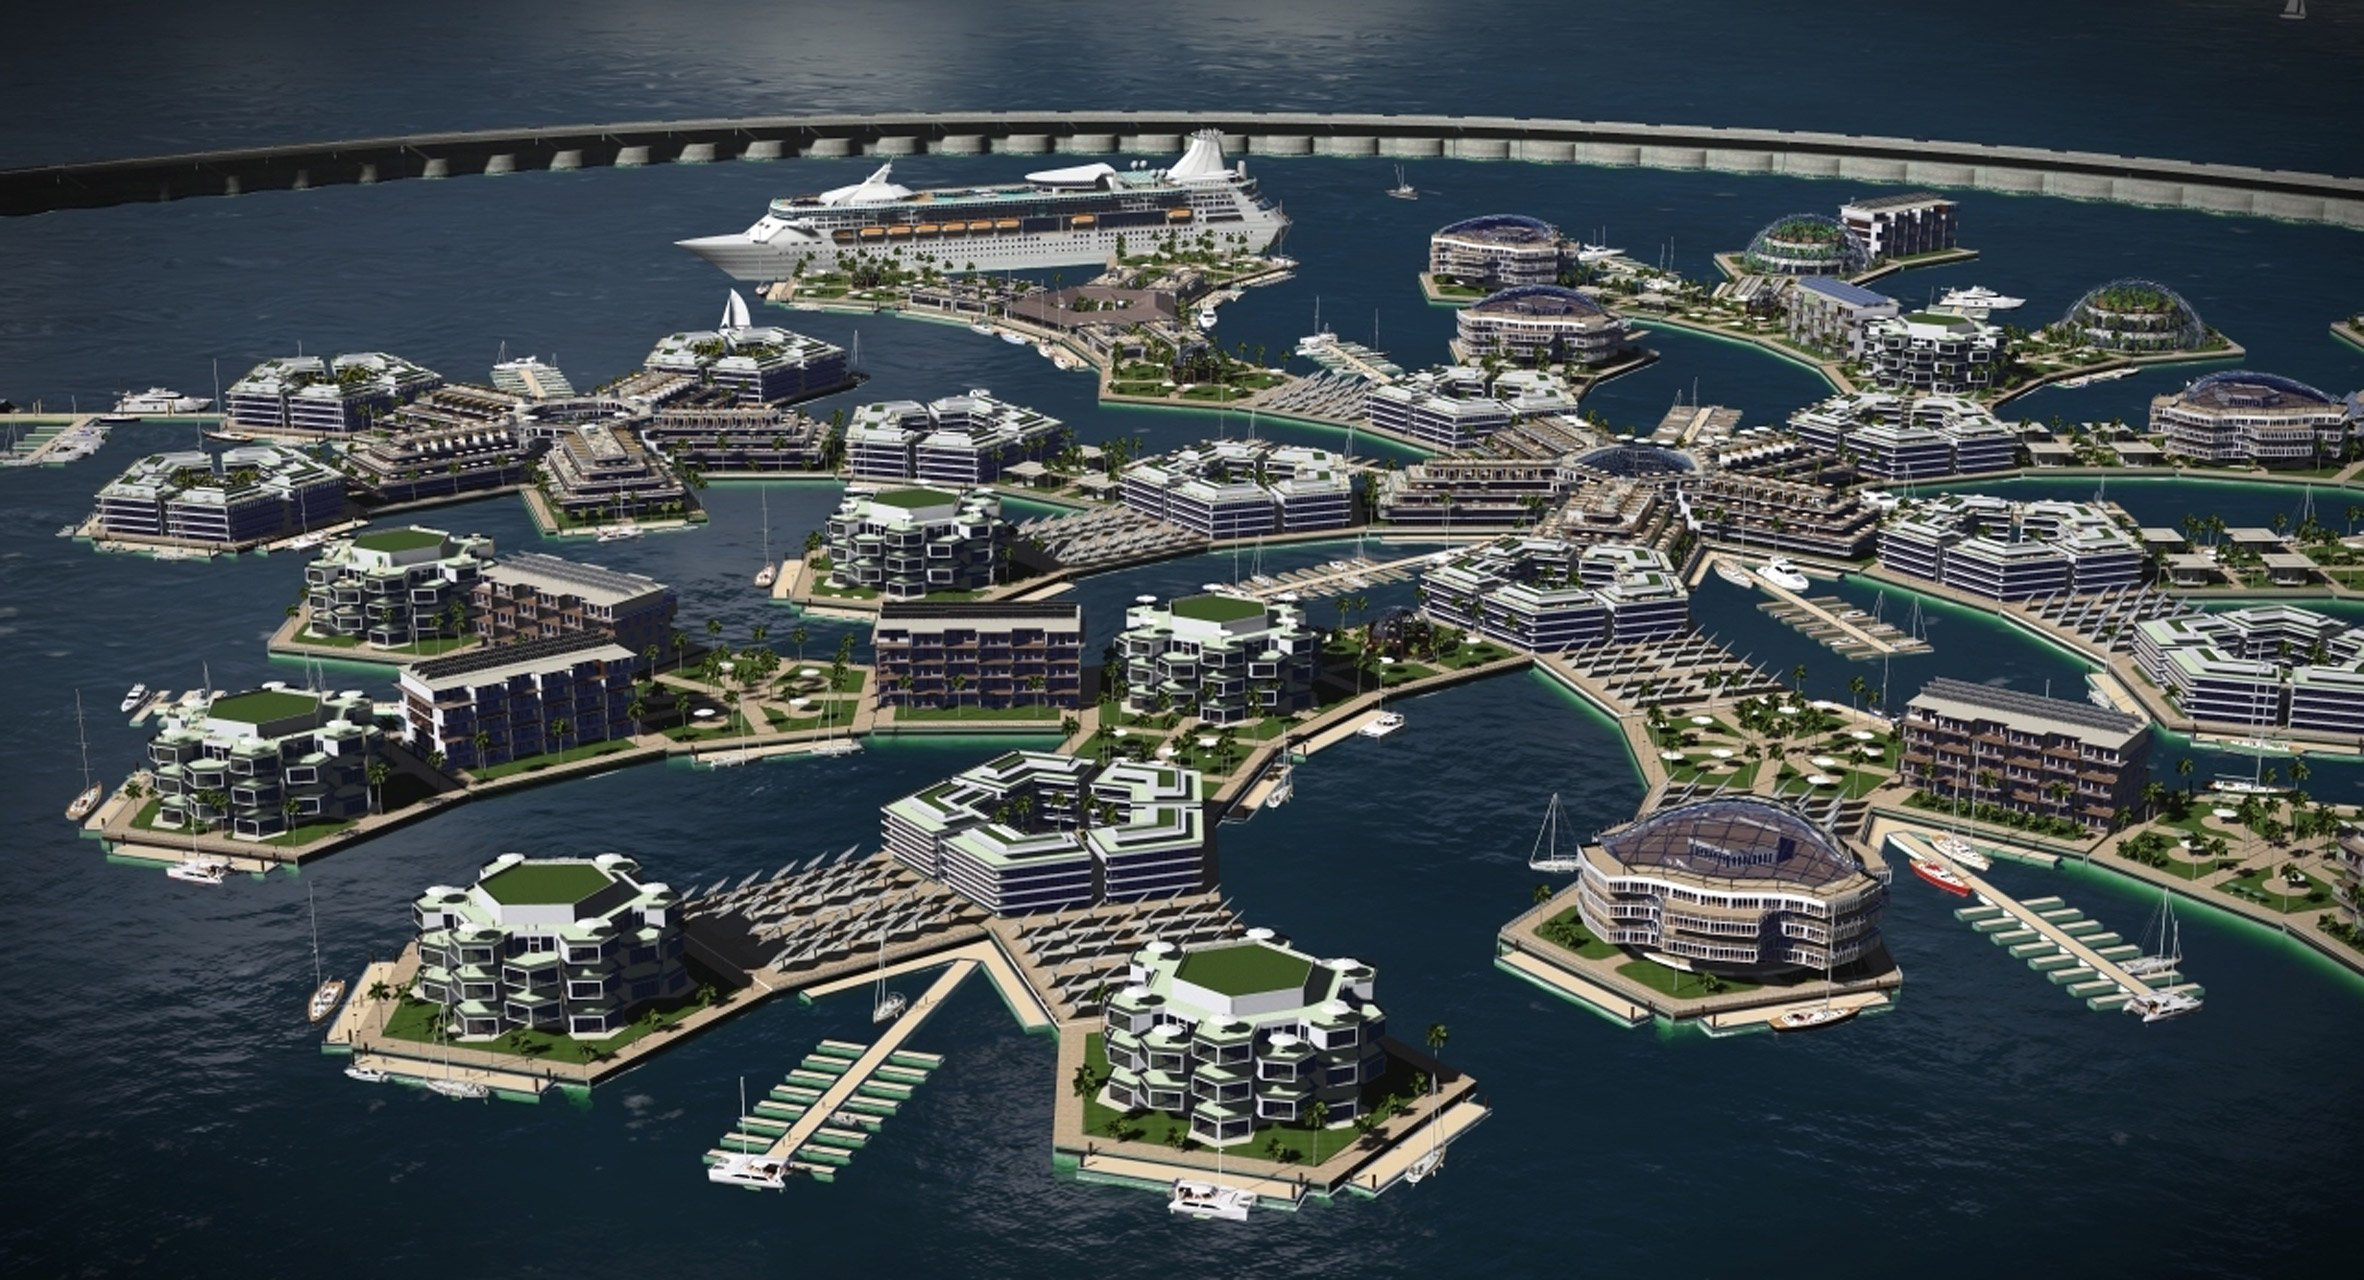 The Seasteading Institute's floating cities are designed for unregulated innovation